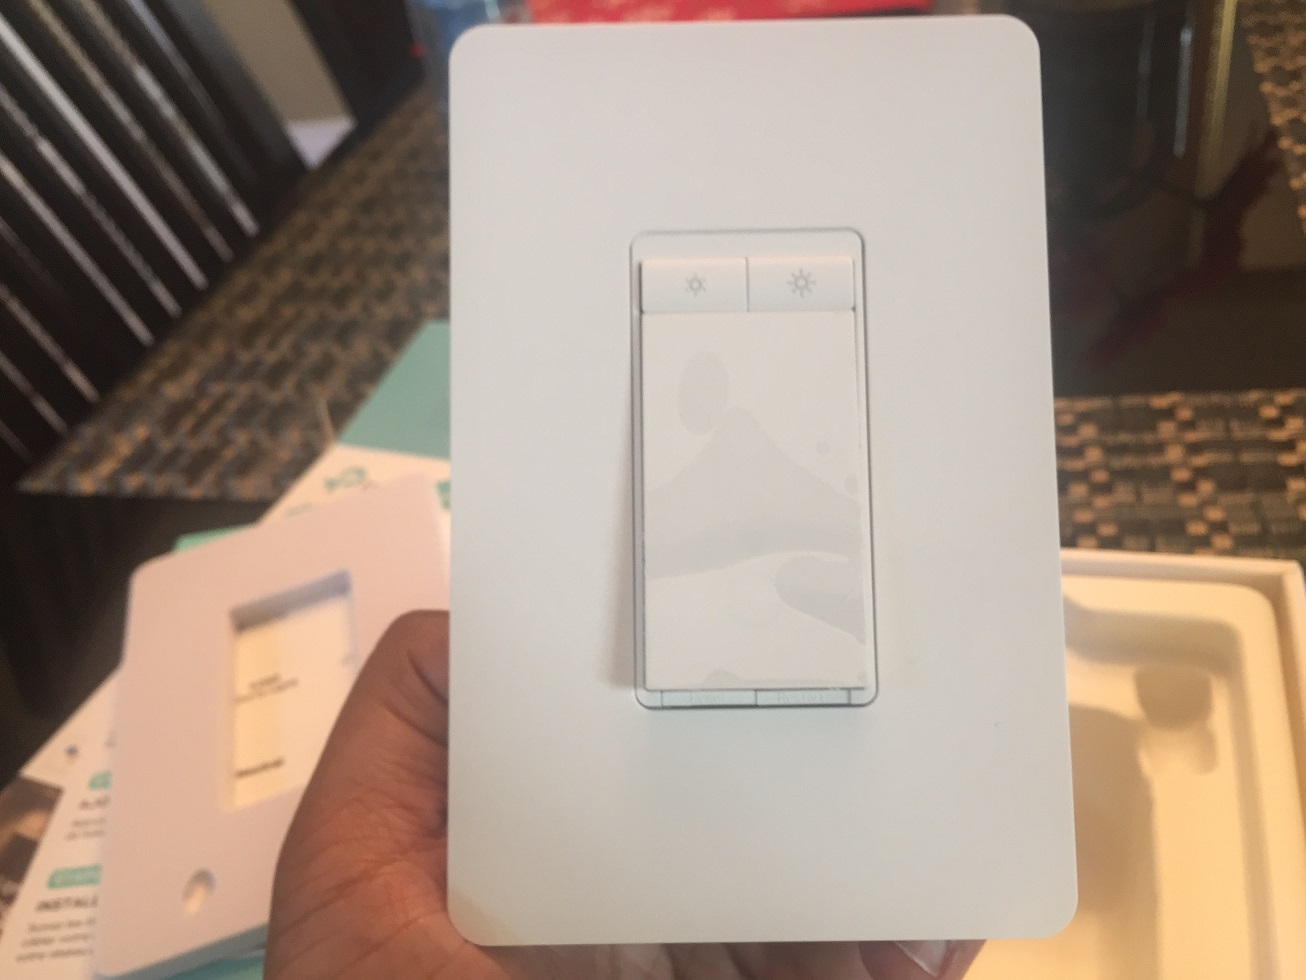 TP Link HS220 Smart Dimmer Switch